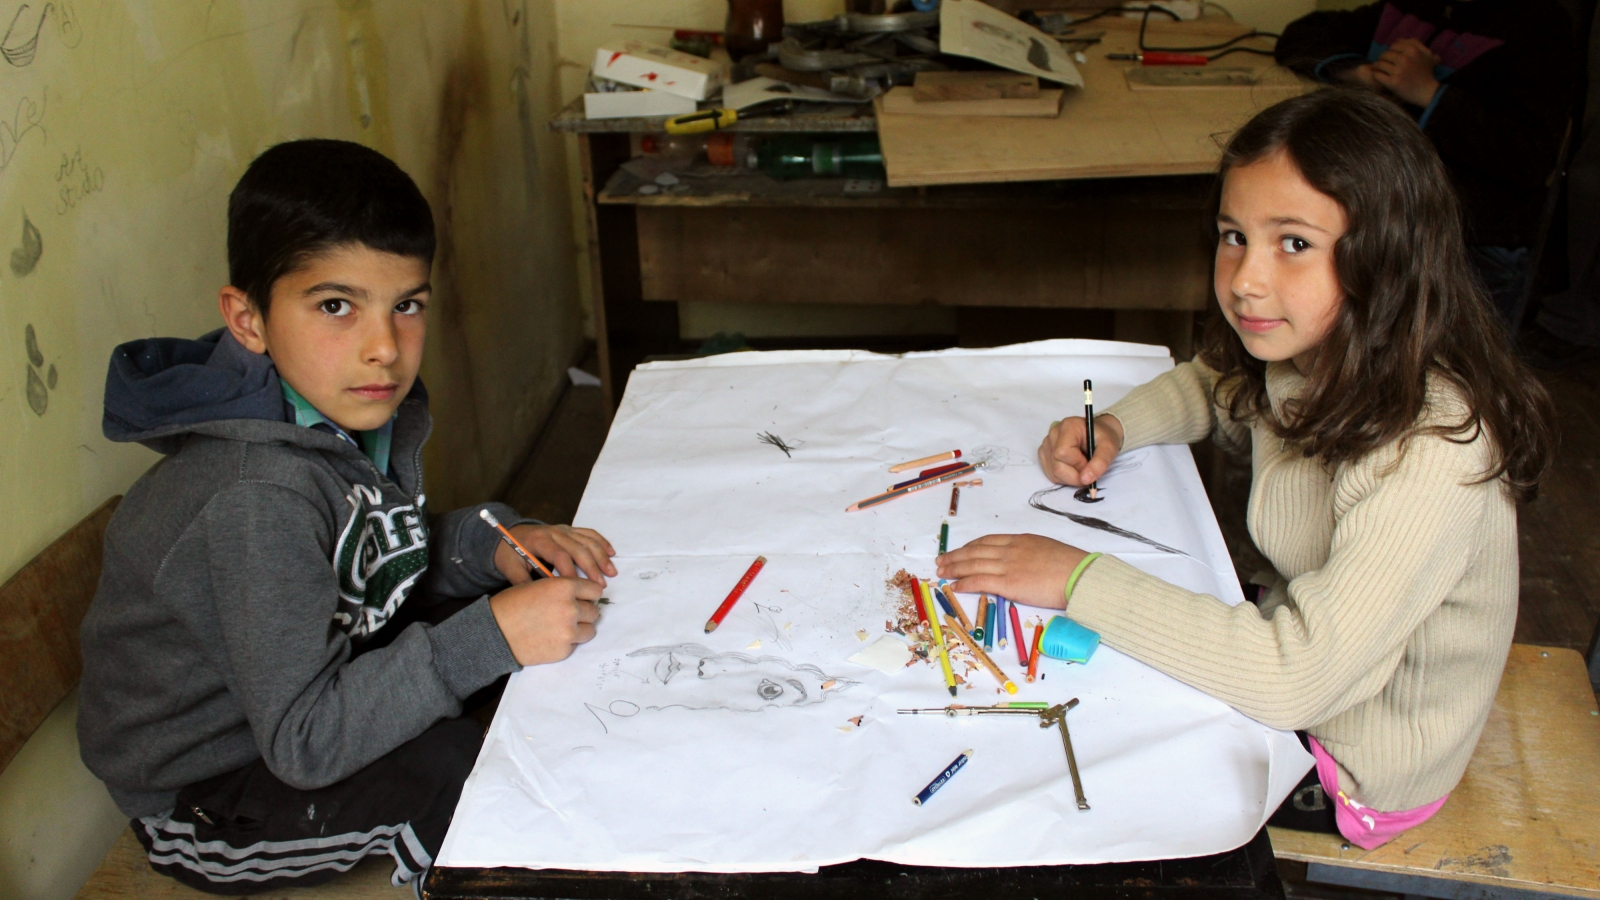 Saba Sabauri (left) and Ketevan Akiashvili (right) apprentices of Snoveli Art Studio